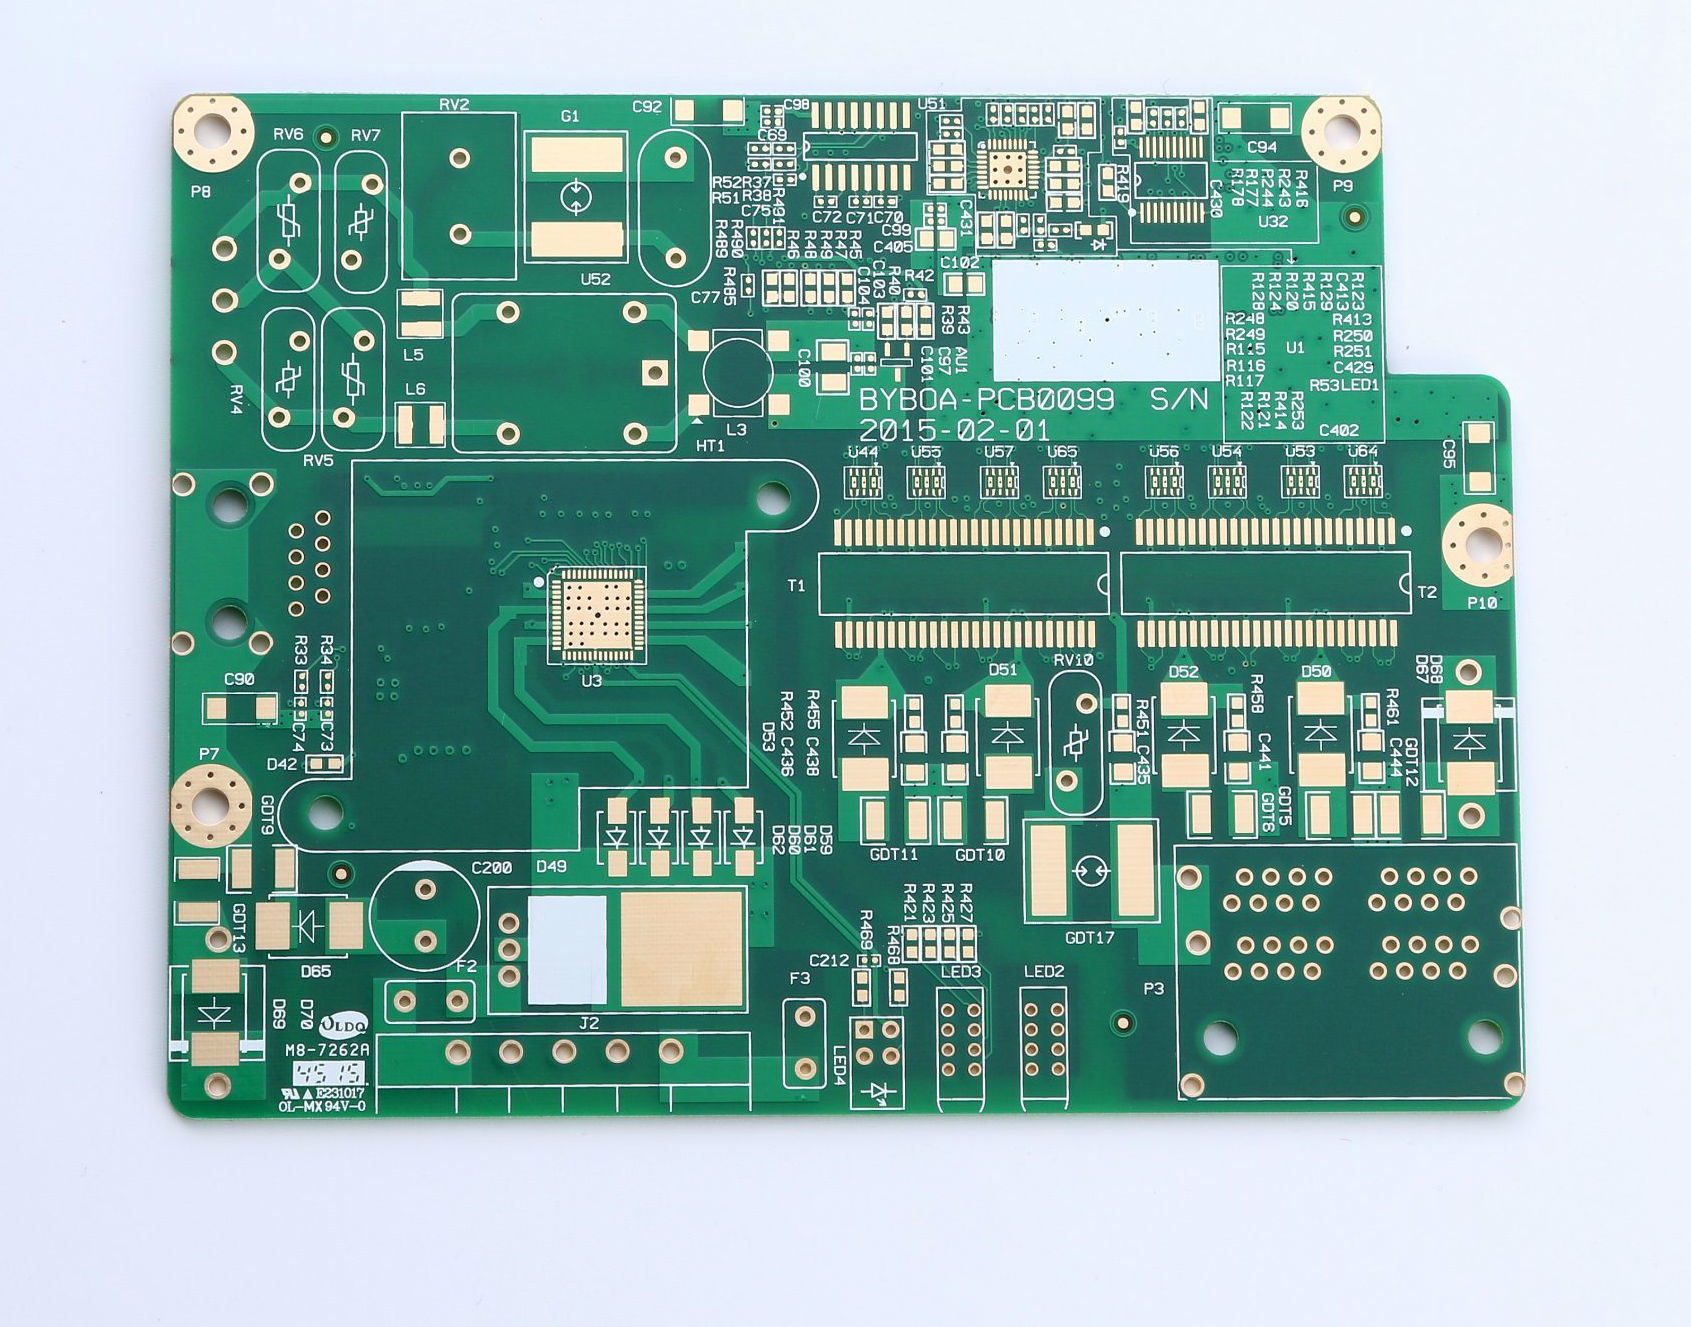 [Hot Item] 1-20 Layers Fr4 PCB Board HASL Enig Multilayer HDI PCB